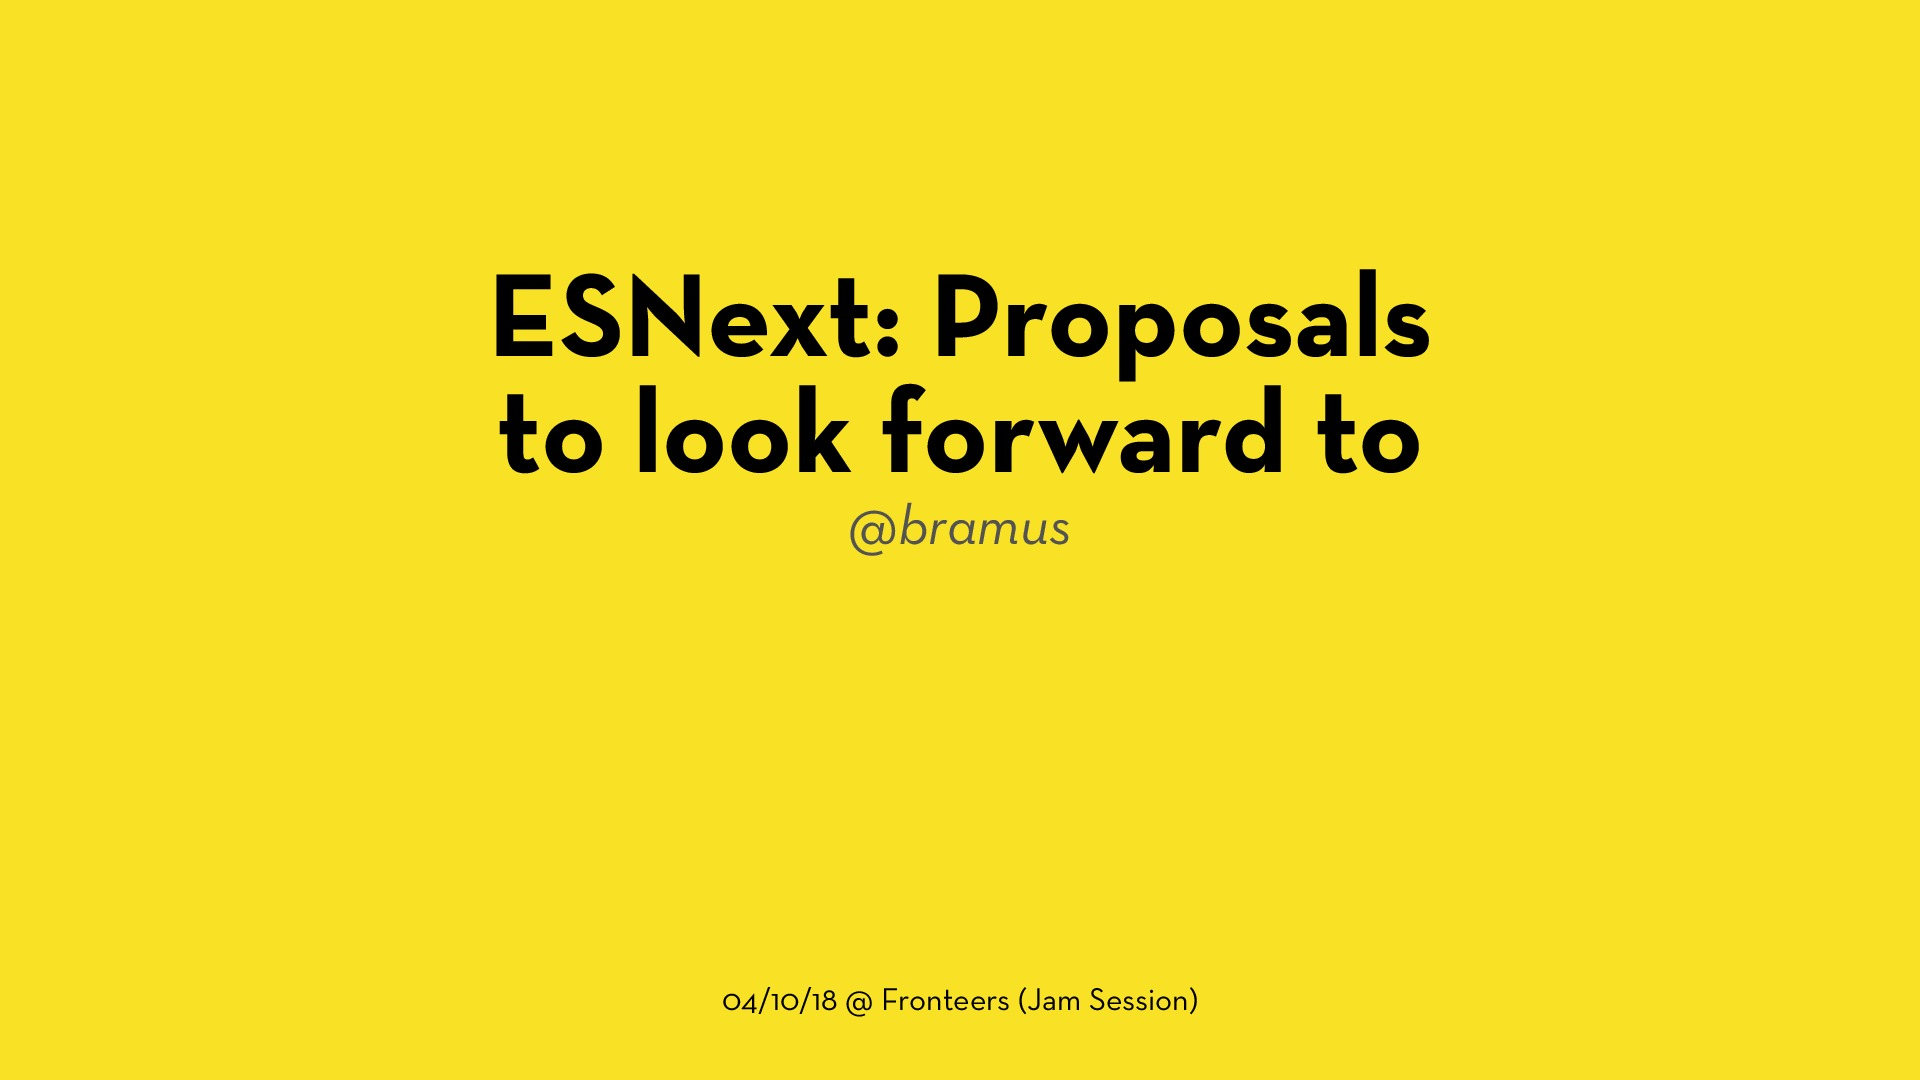 ESNext: Proposals to look forward to (2018.10.04 @ Fronteers (Jam Session))